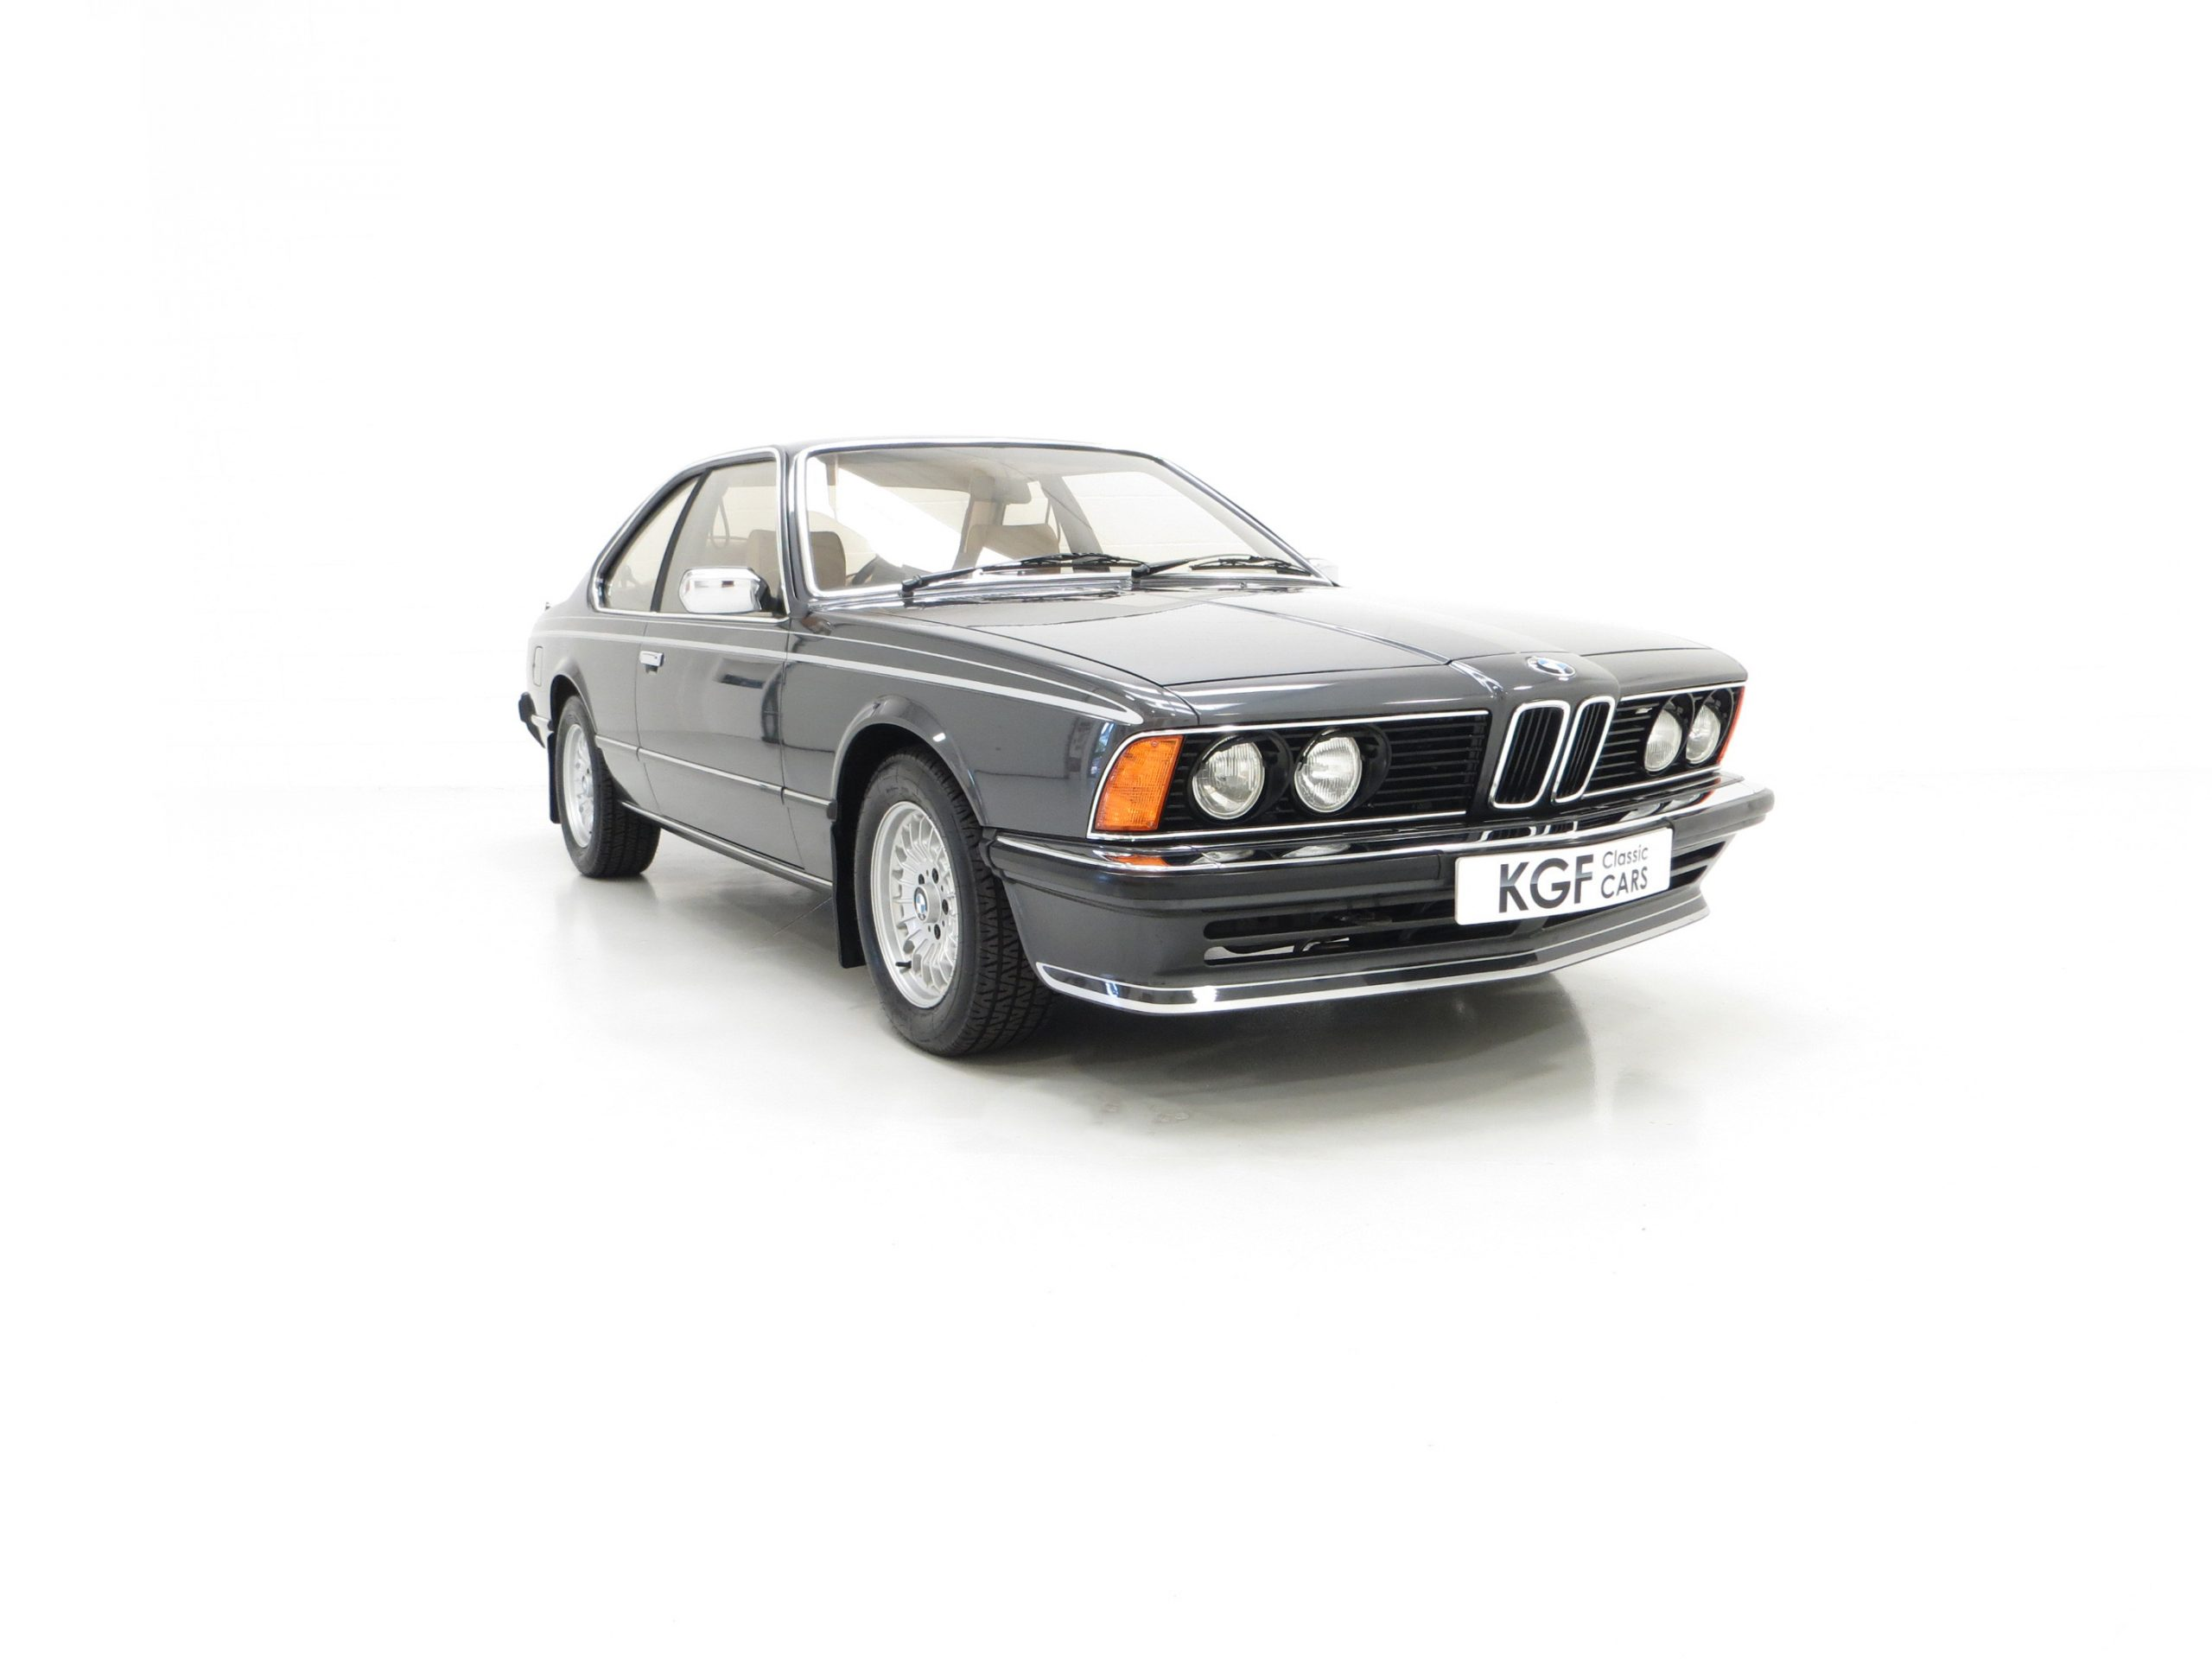 Bmw E24 635 Csi Coupe Kgf